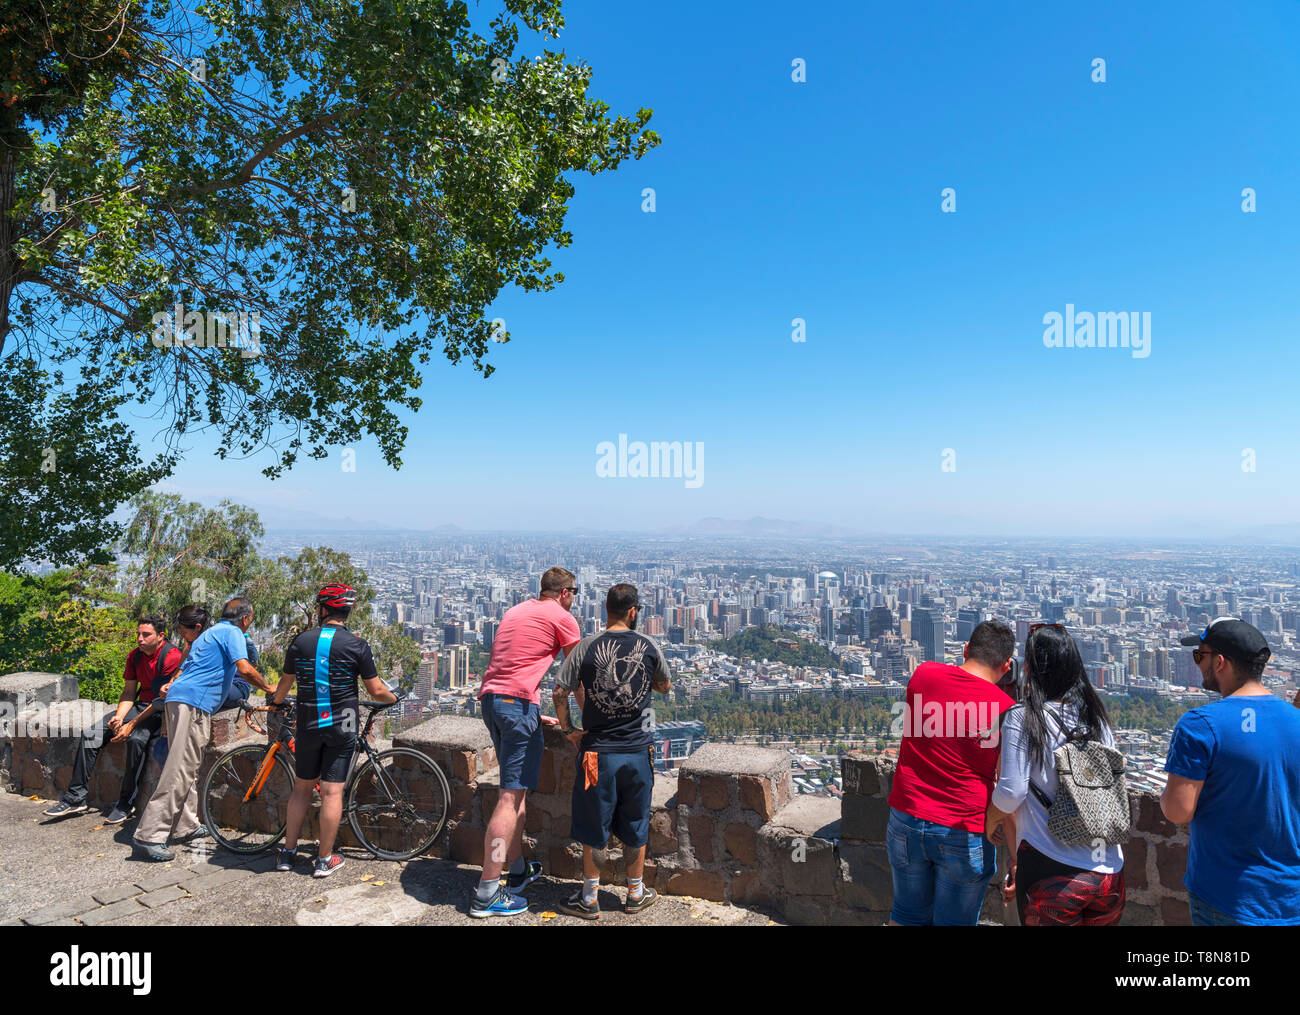 View over the city from the summit of Cerro San Cristóbal (San Cristóbal Hill), Santiago, Chile, South America - Stock Image